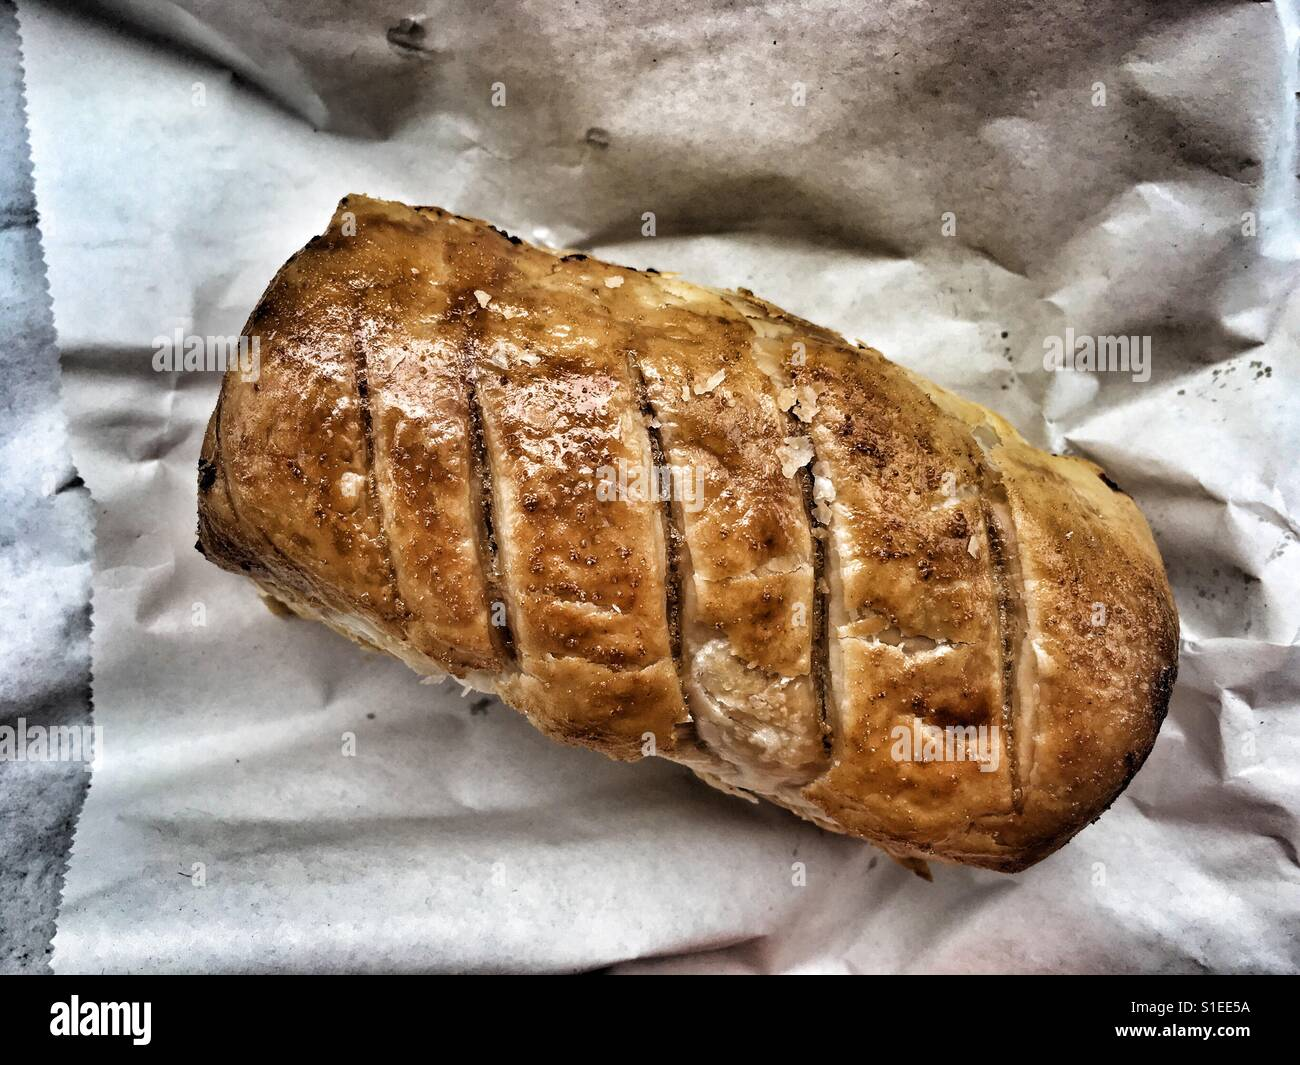 Sausage Roll - Stock Image